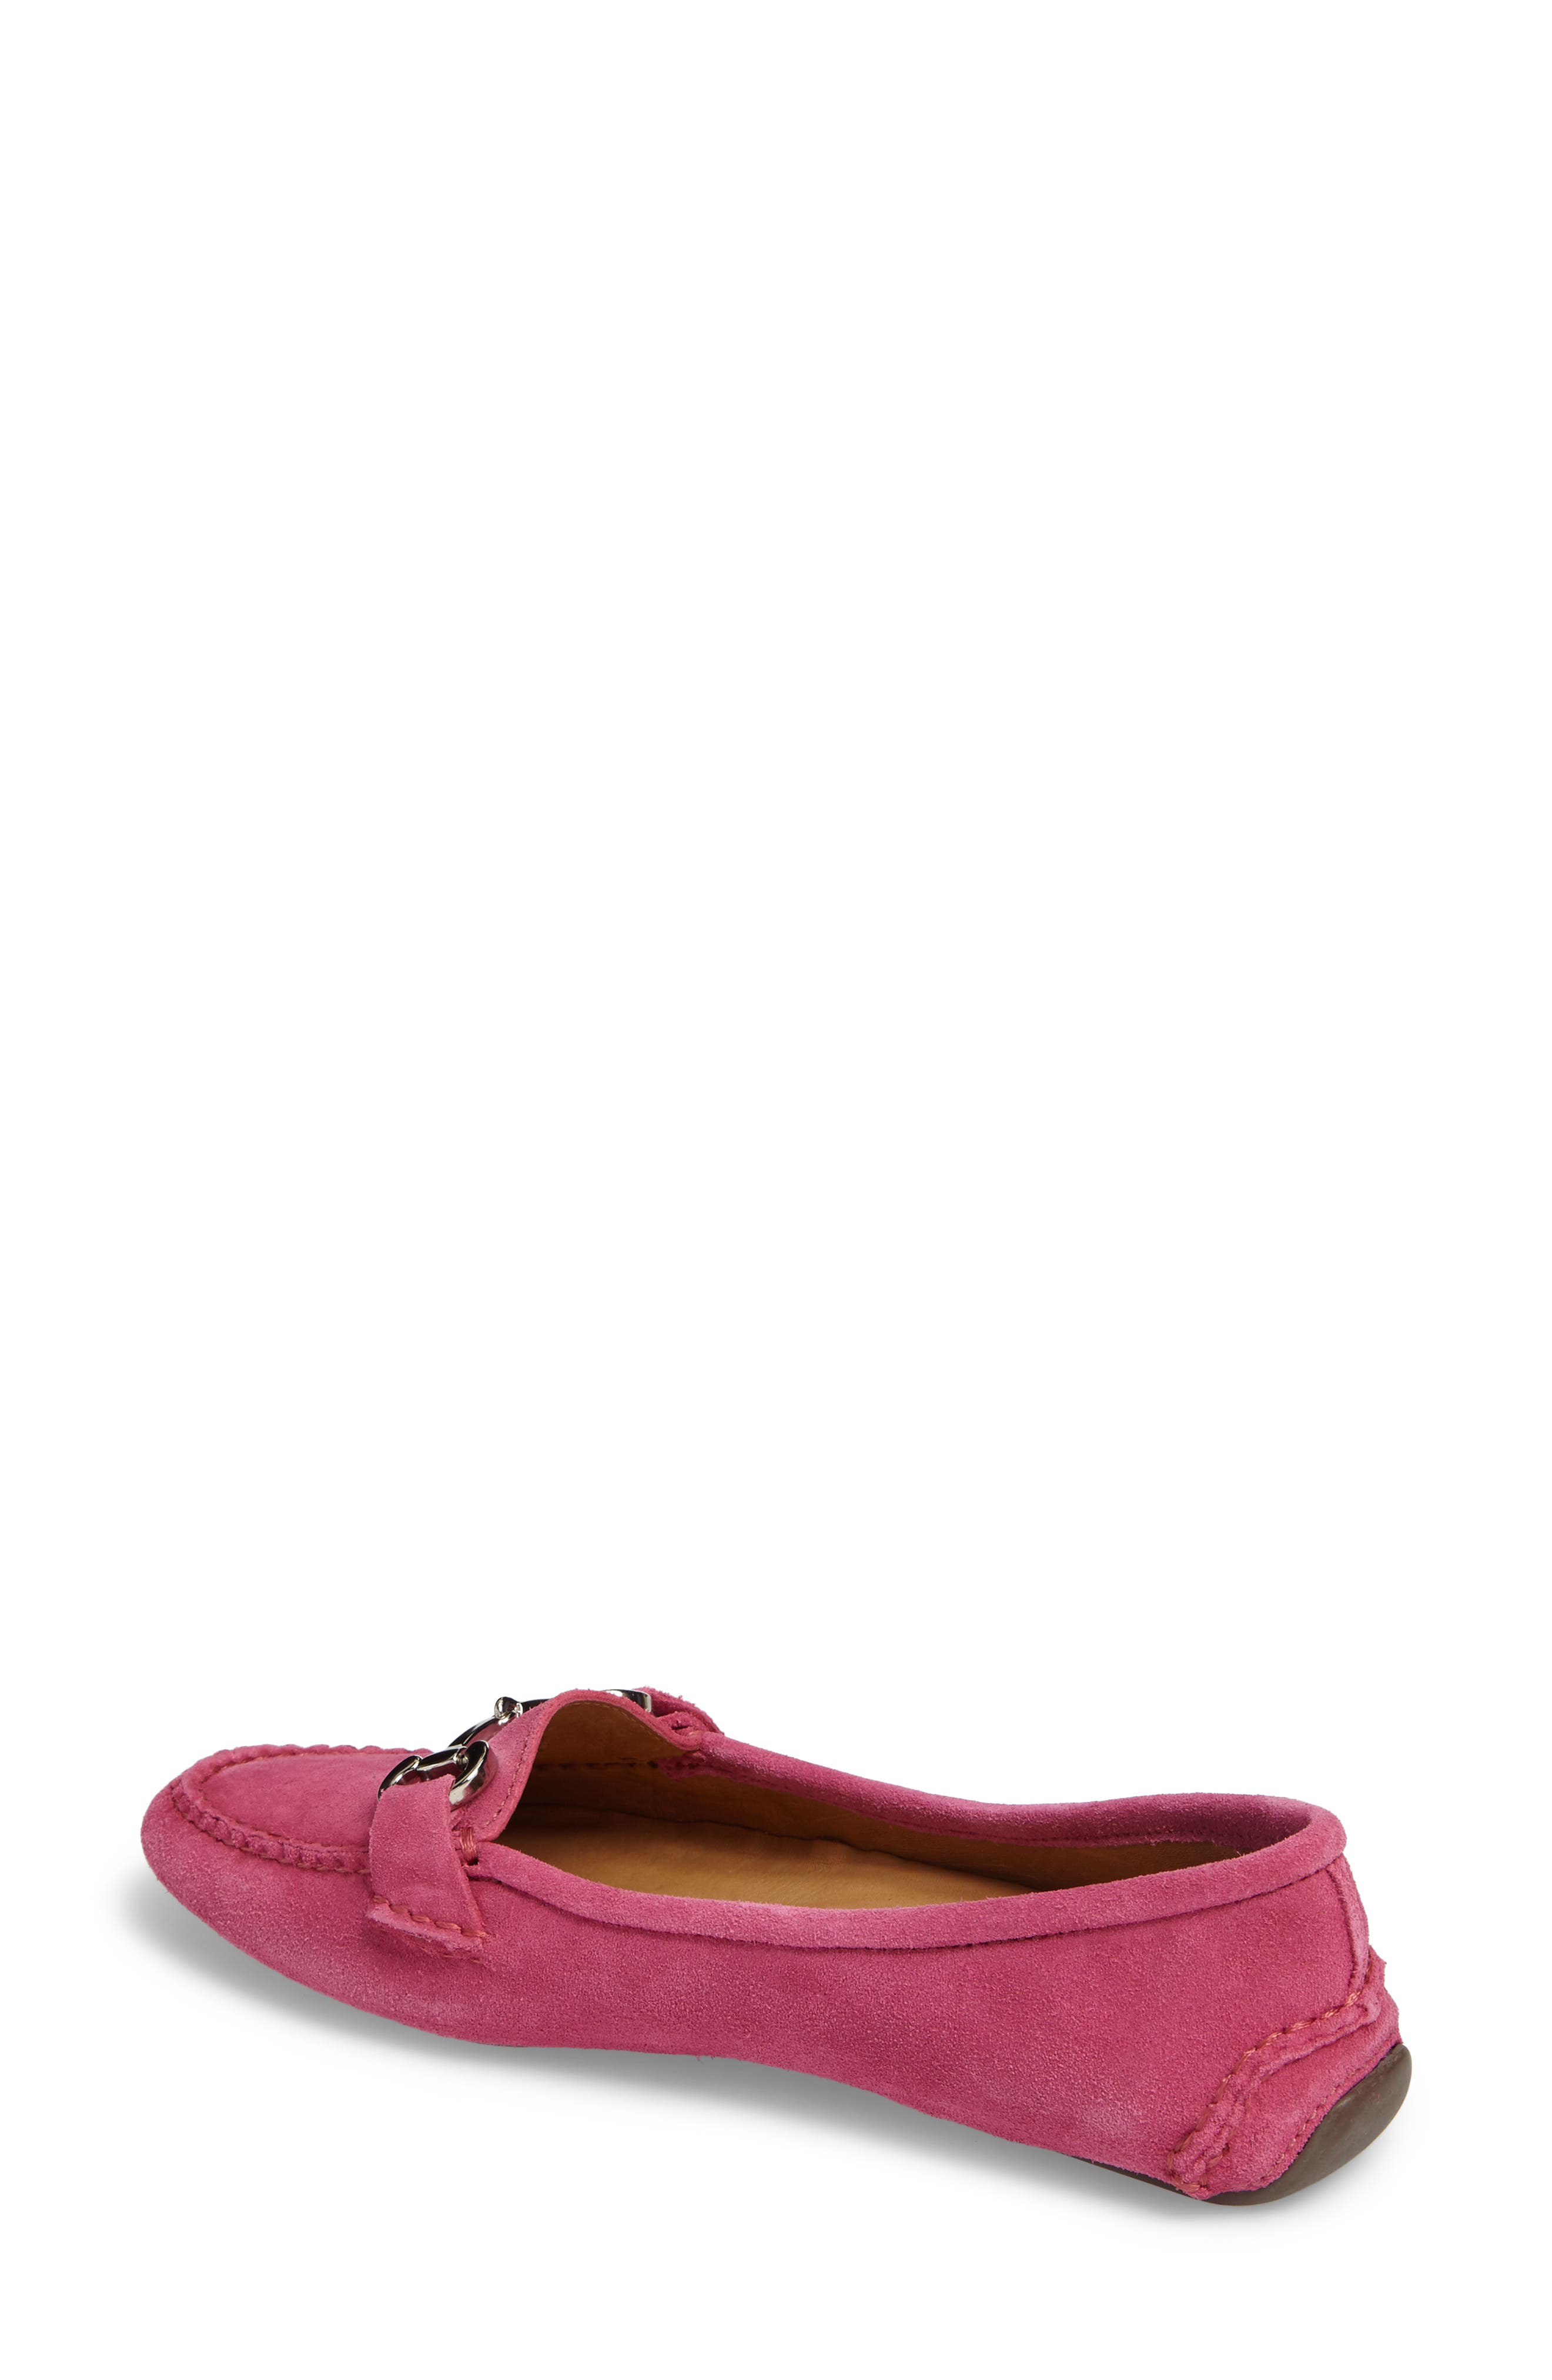 'Carrie' Loafer,                             Alternate thumbnail 2, color,                             670